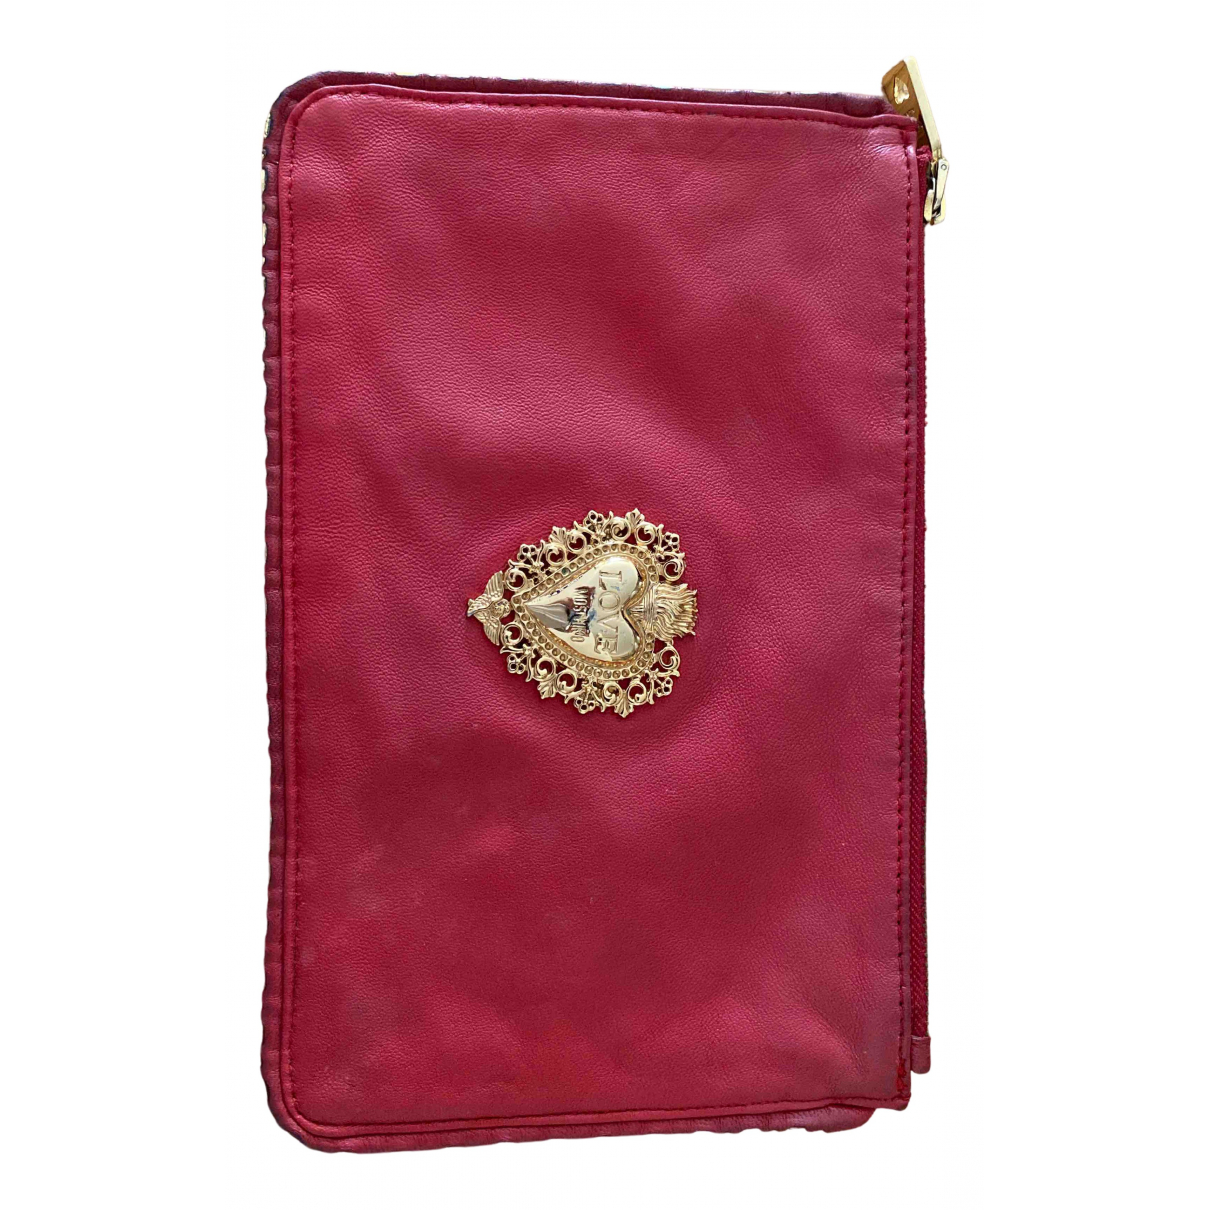 Moschino Love \N Red Leather Clutch bag for Women \N